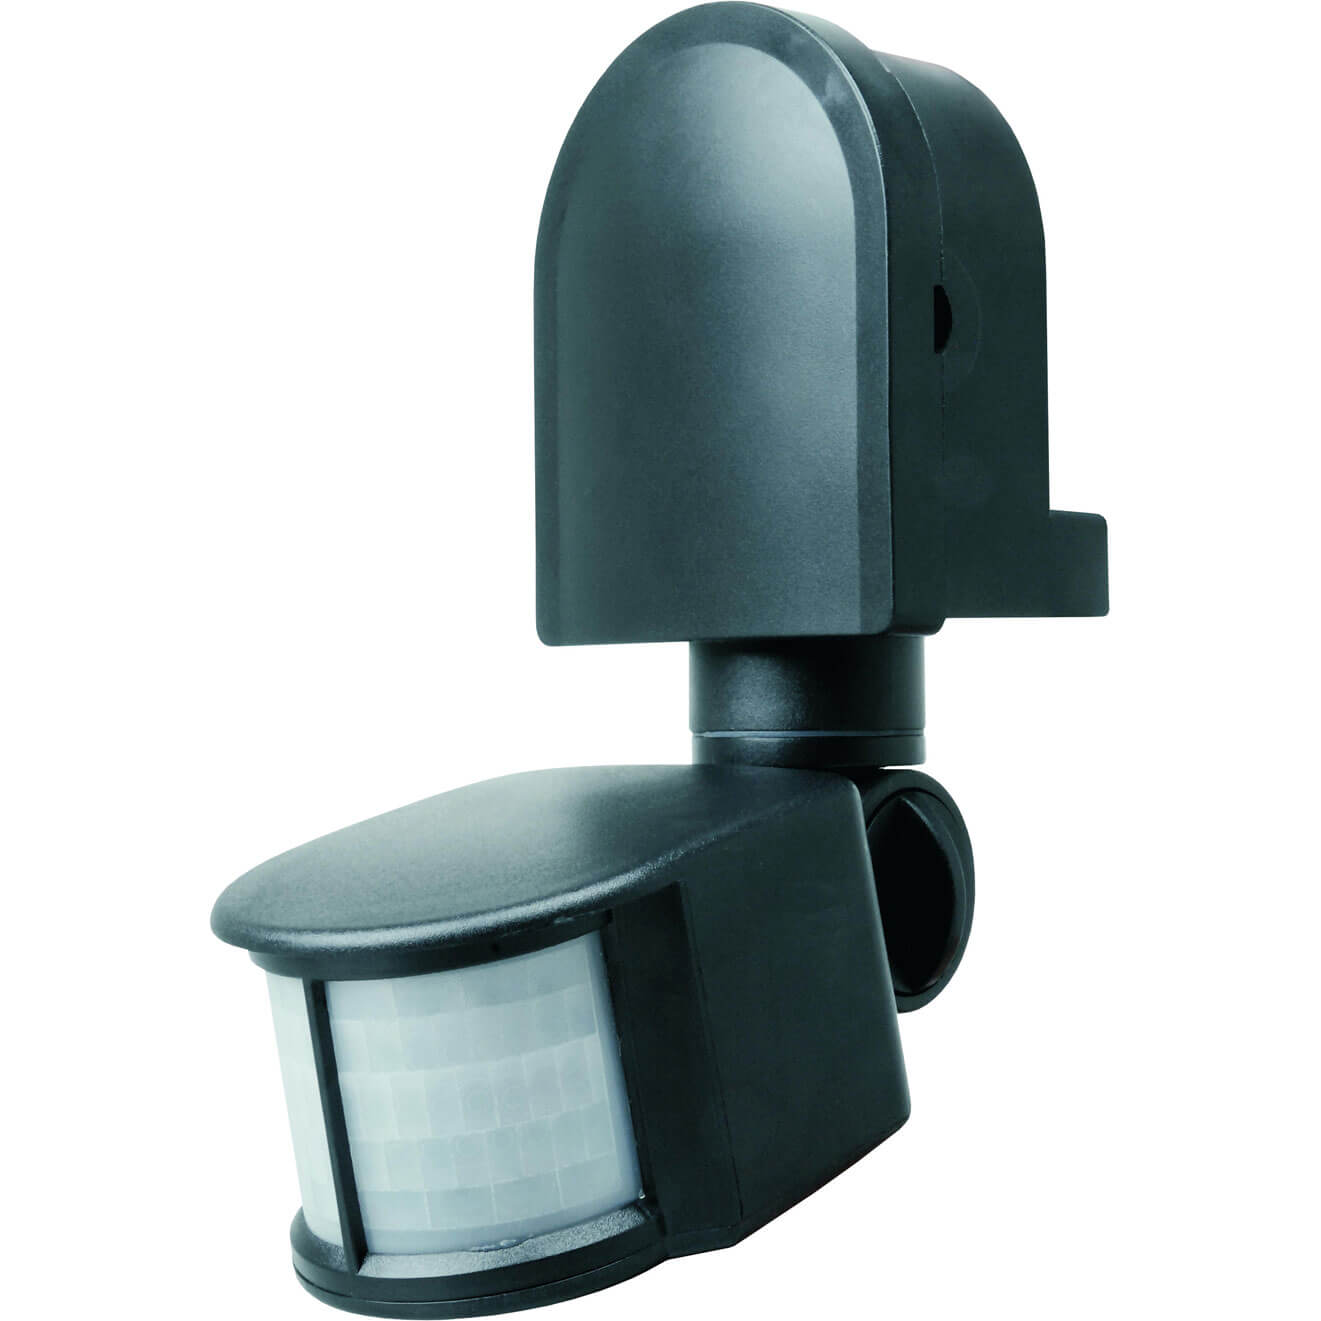 Byron ES9 Motion Detector Light Switch Black